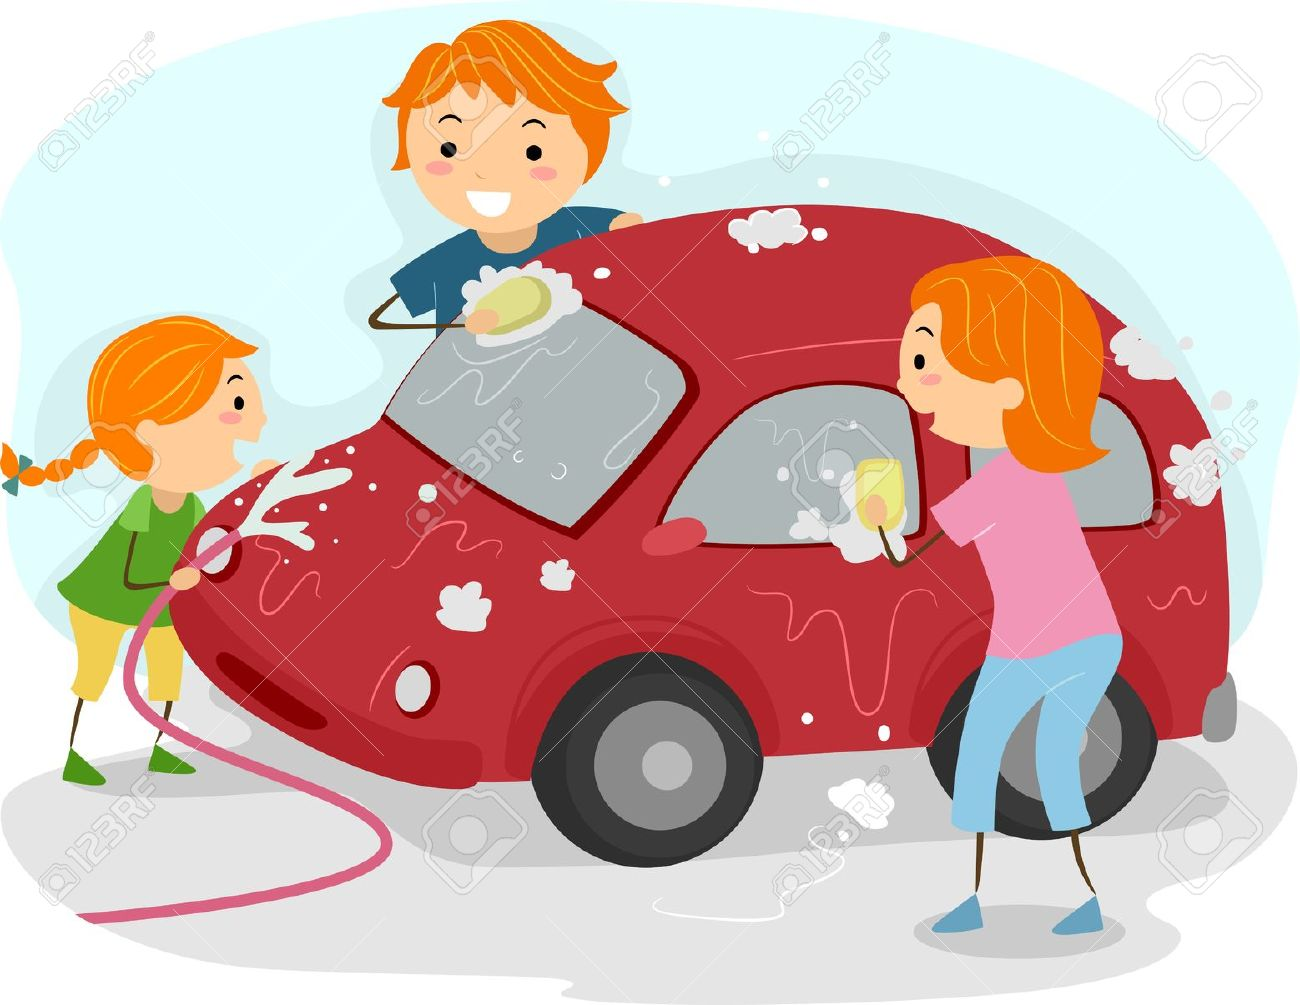 Car in car wash clipart svg download Car wash car clipart - ClipartFest svg download